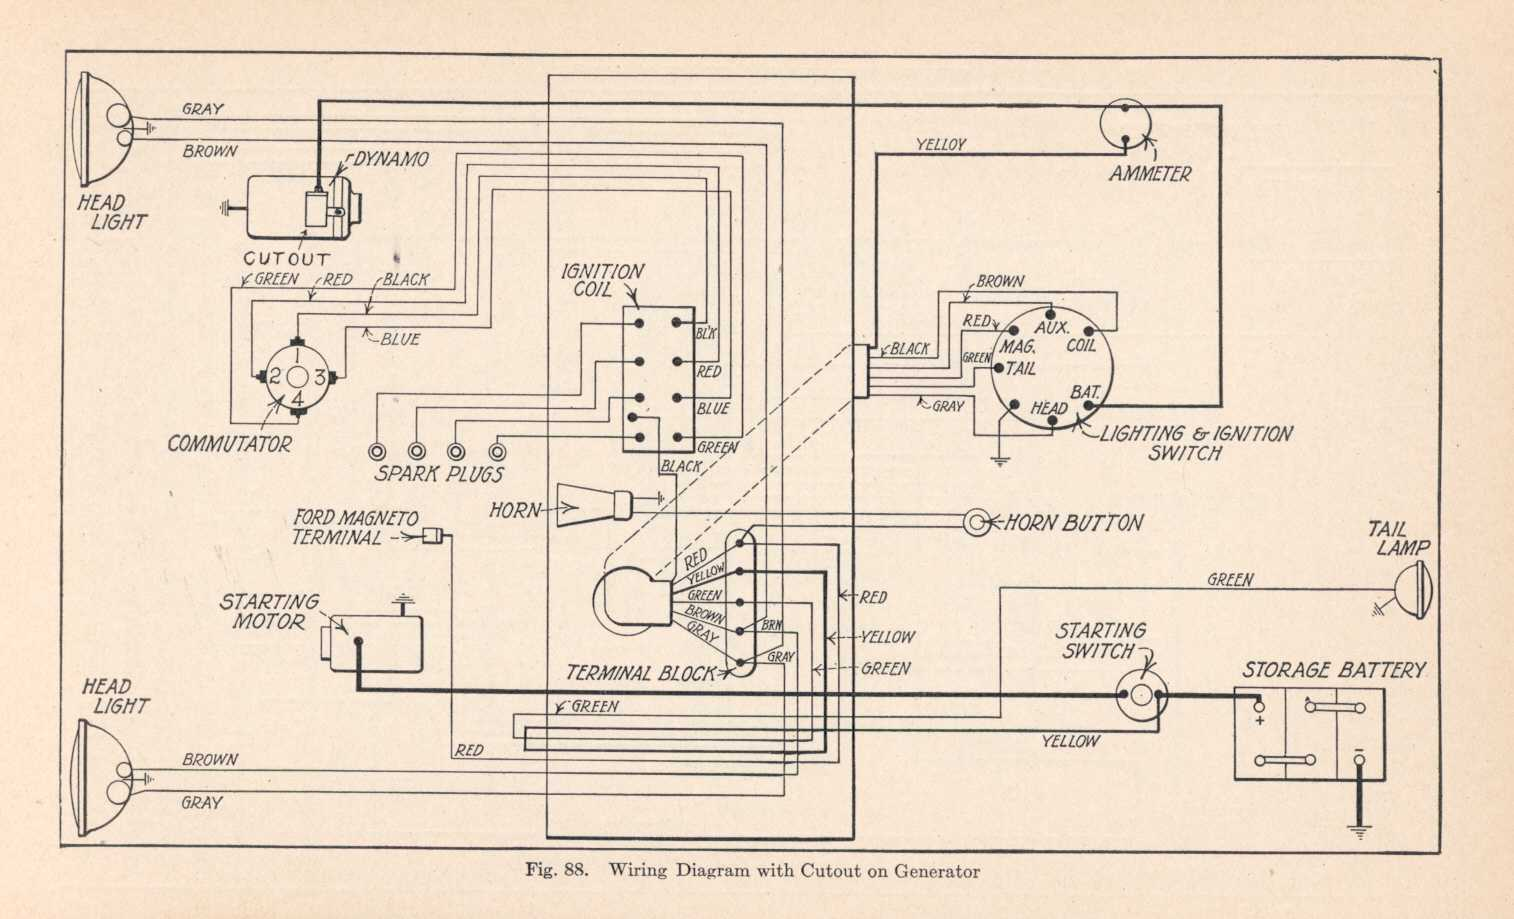 model t ford wiring diagram 2004 passat fuse box forum amp meter help needed